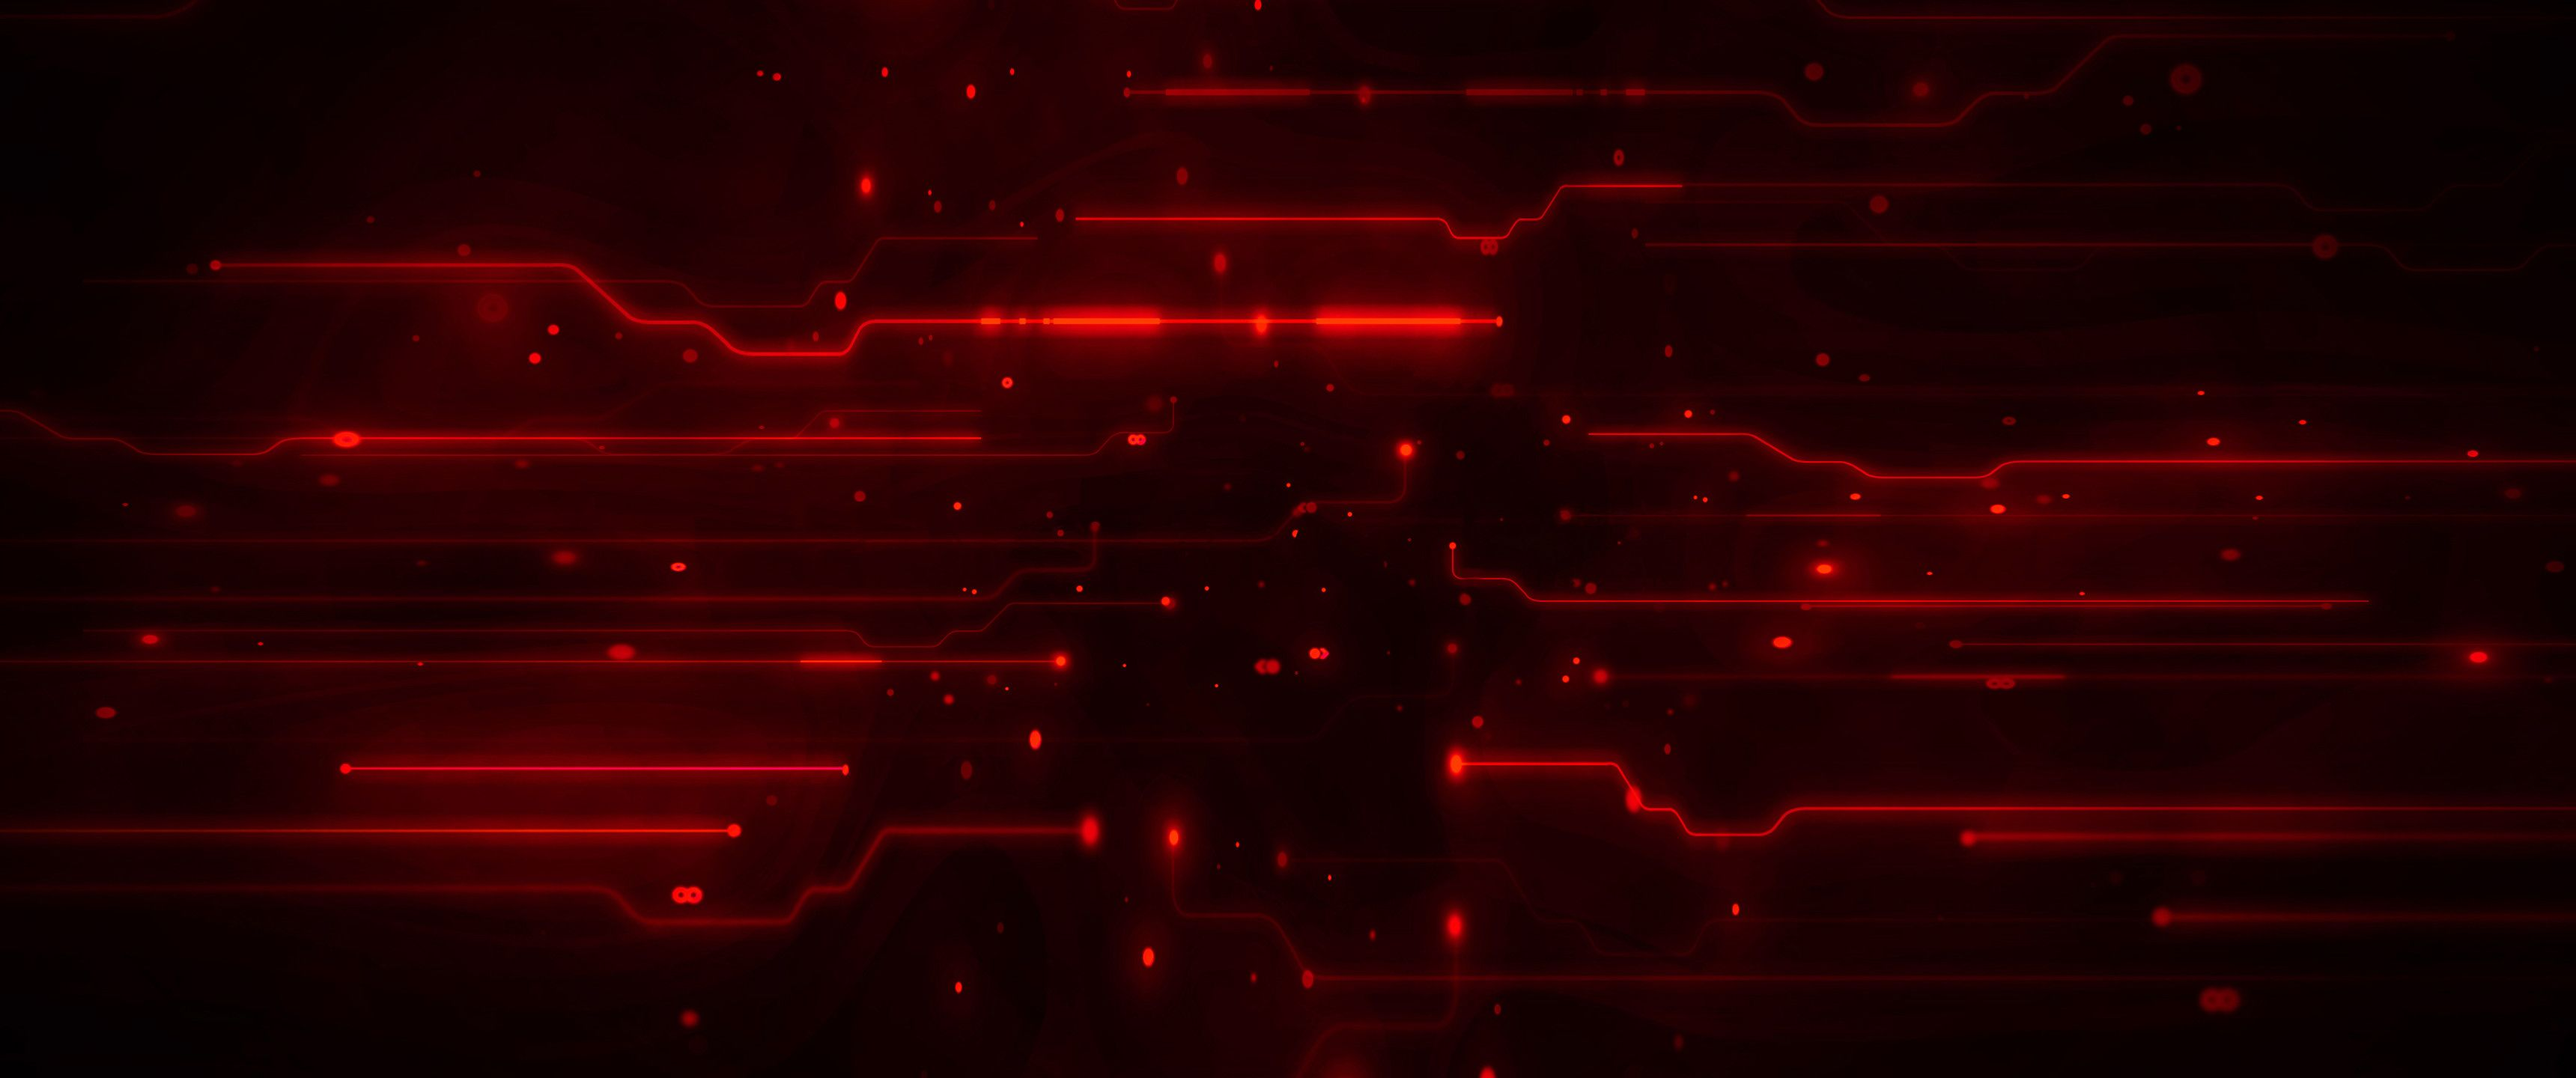 Get Red Aesthetic Wallpaper Wide Images